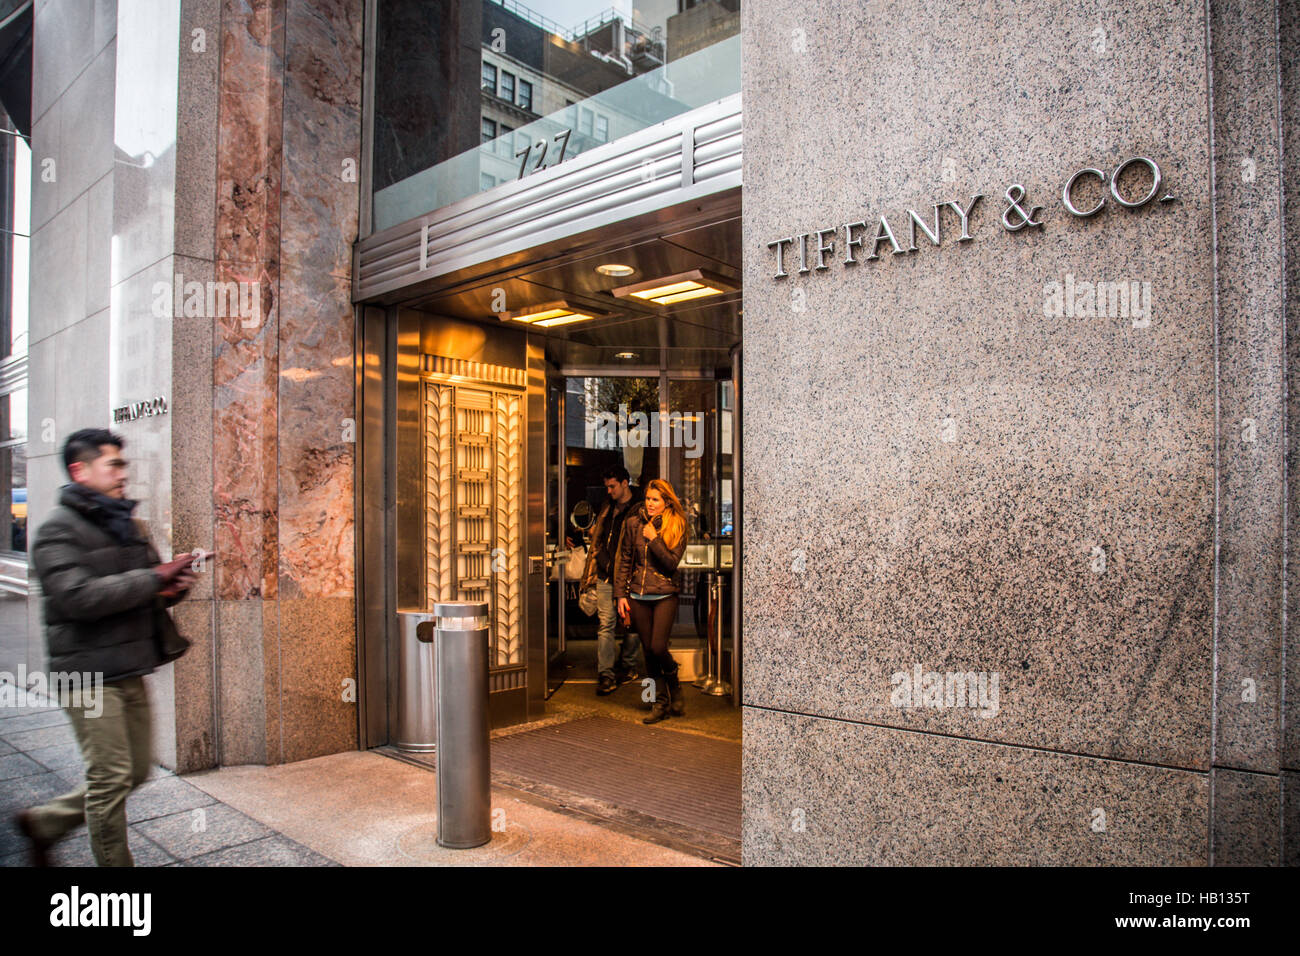 Exterior view of tiffany co on fifth avenue in new york for Tiffany a new york